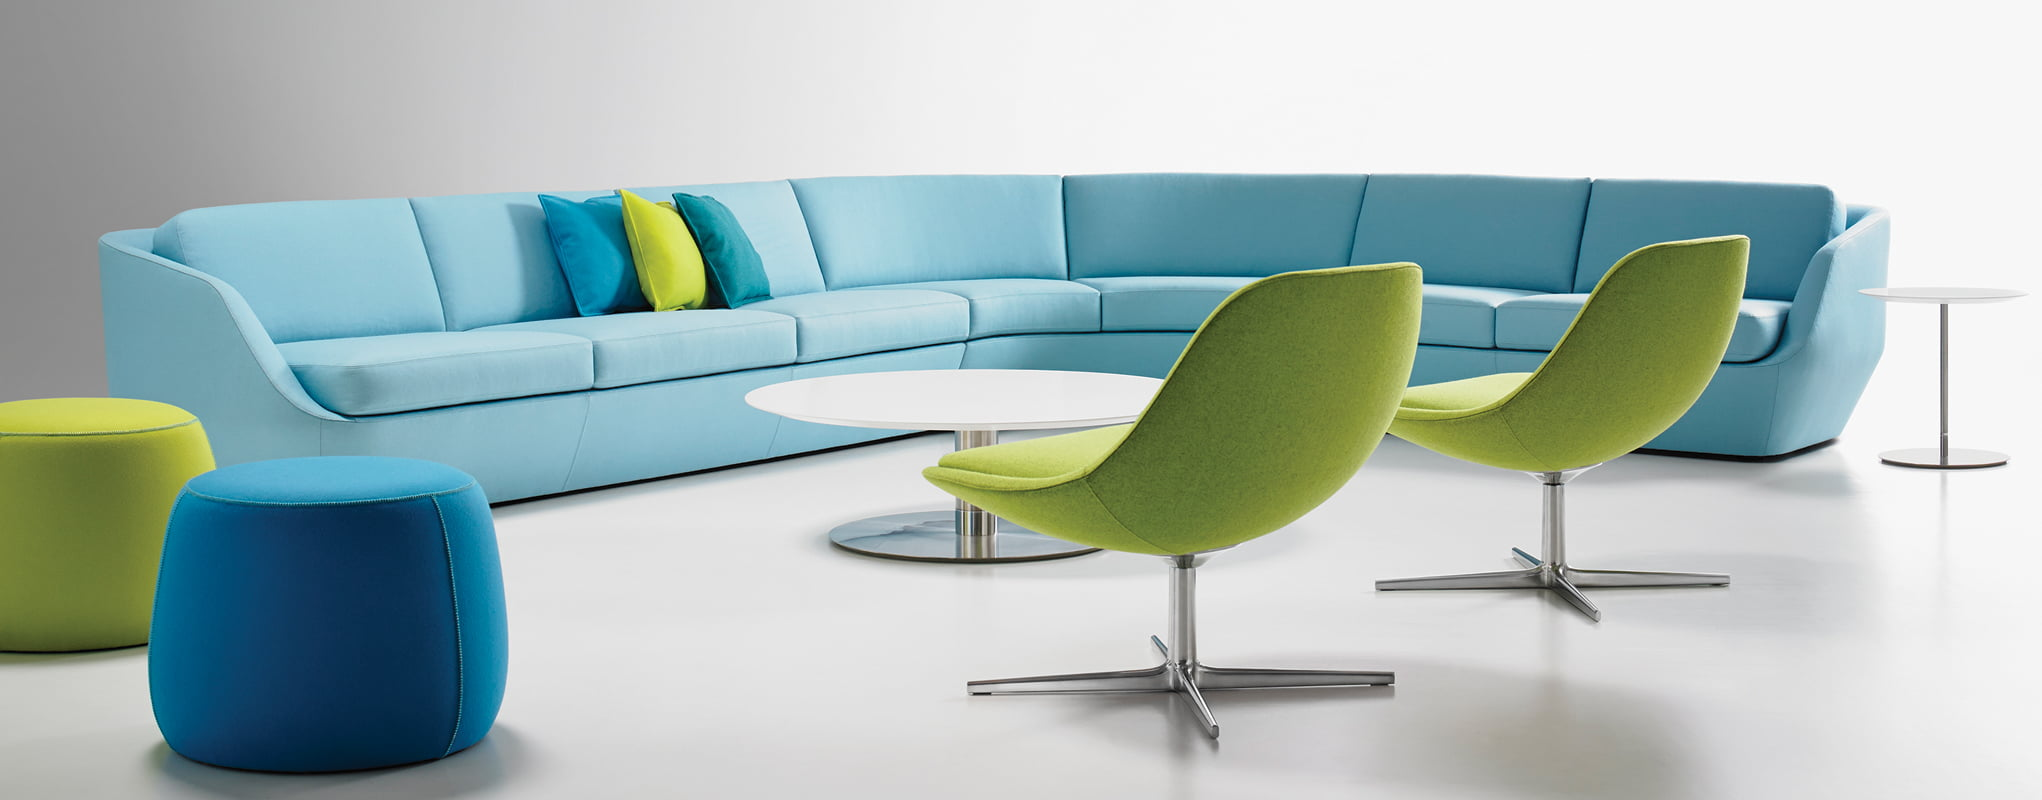 Couch - Design